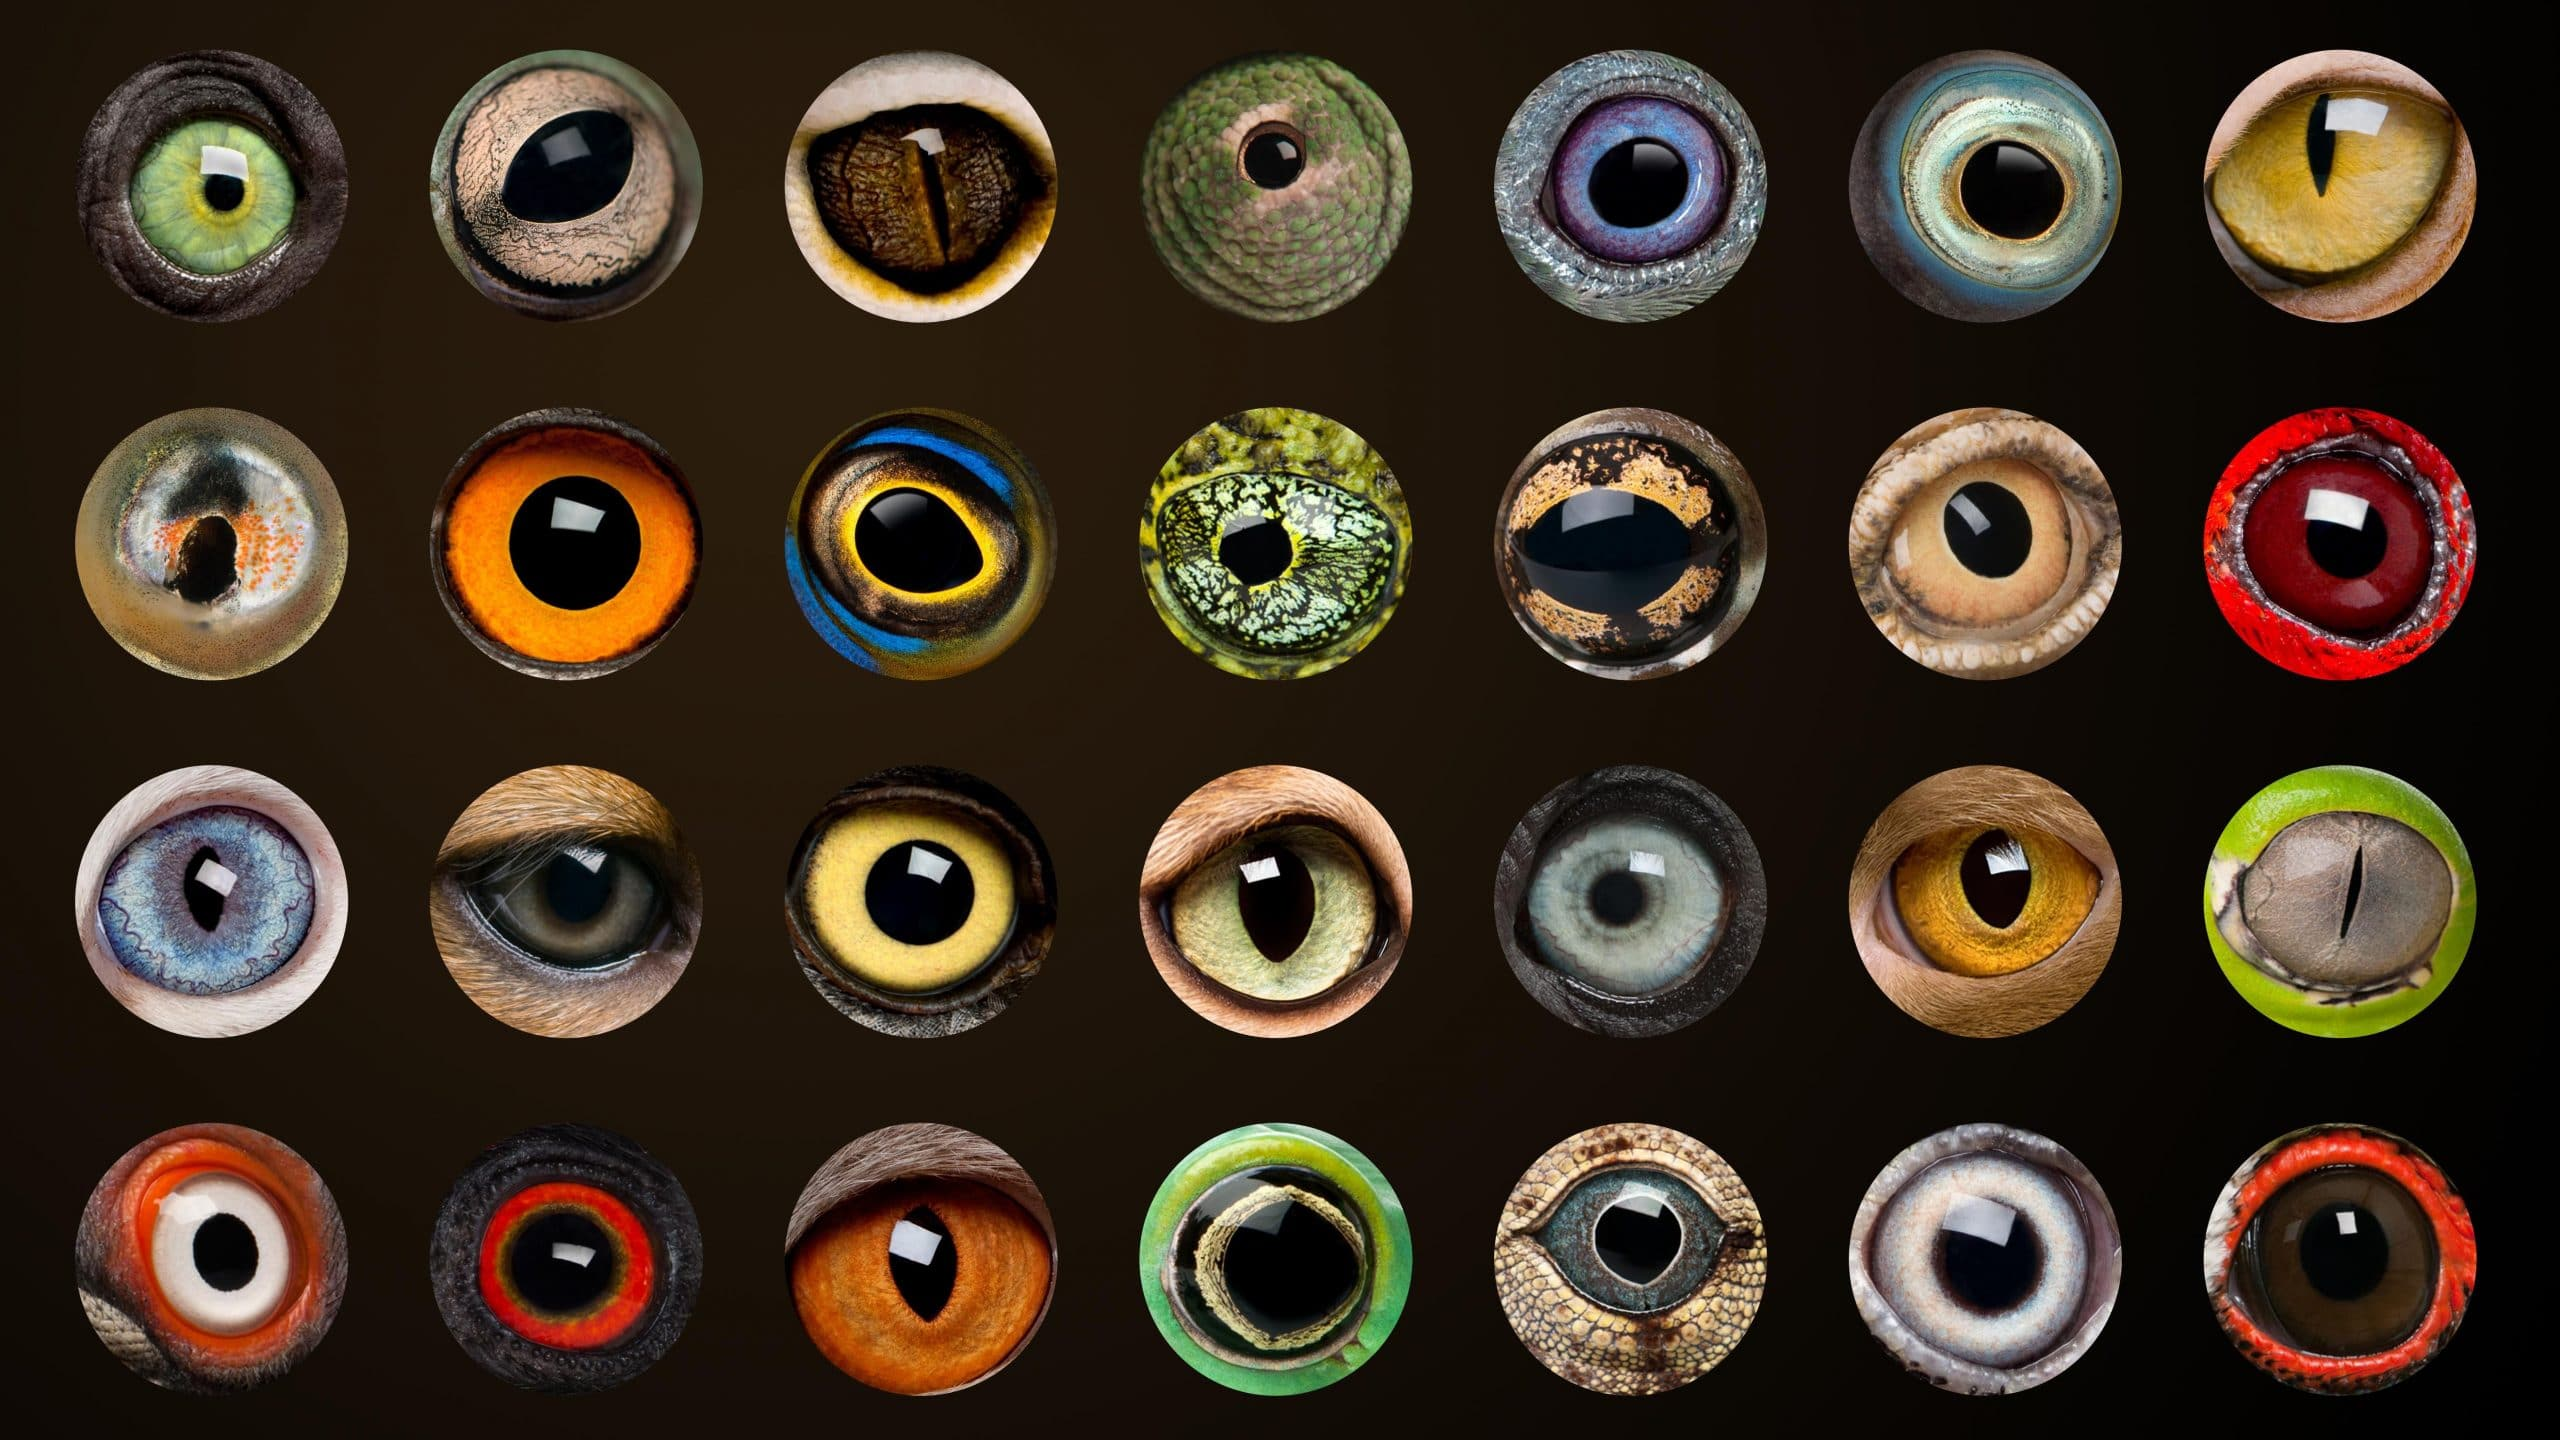 Composition of Animal eyes